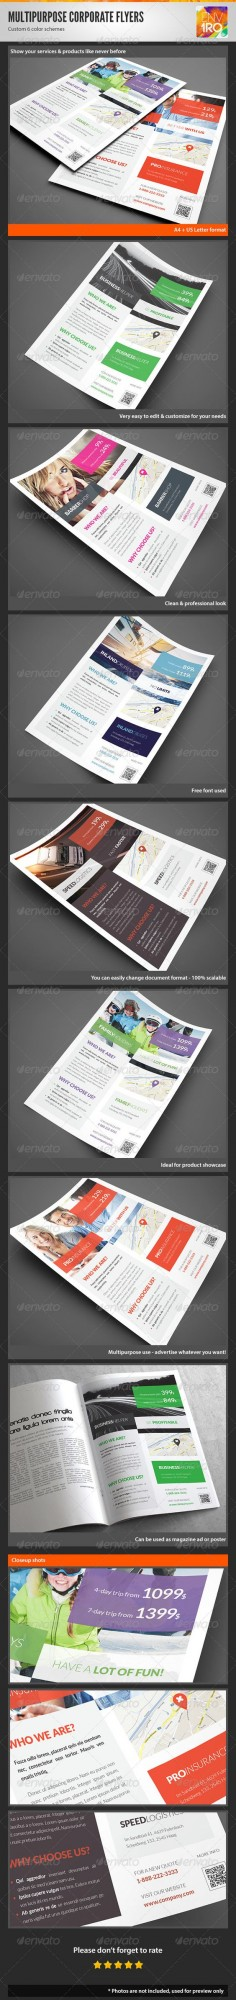 Multipurpose Corporate Flyers, Magazine Ads Vol 12 - Corporate Flyers